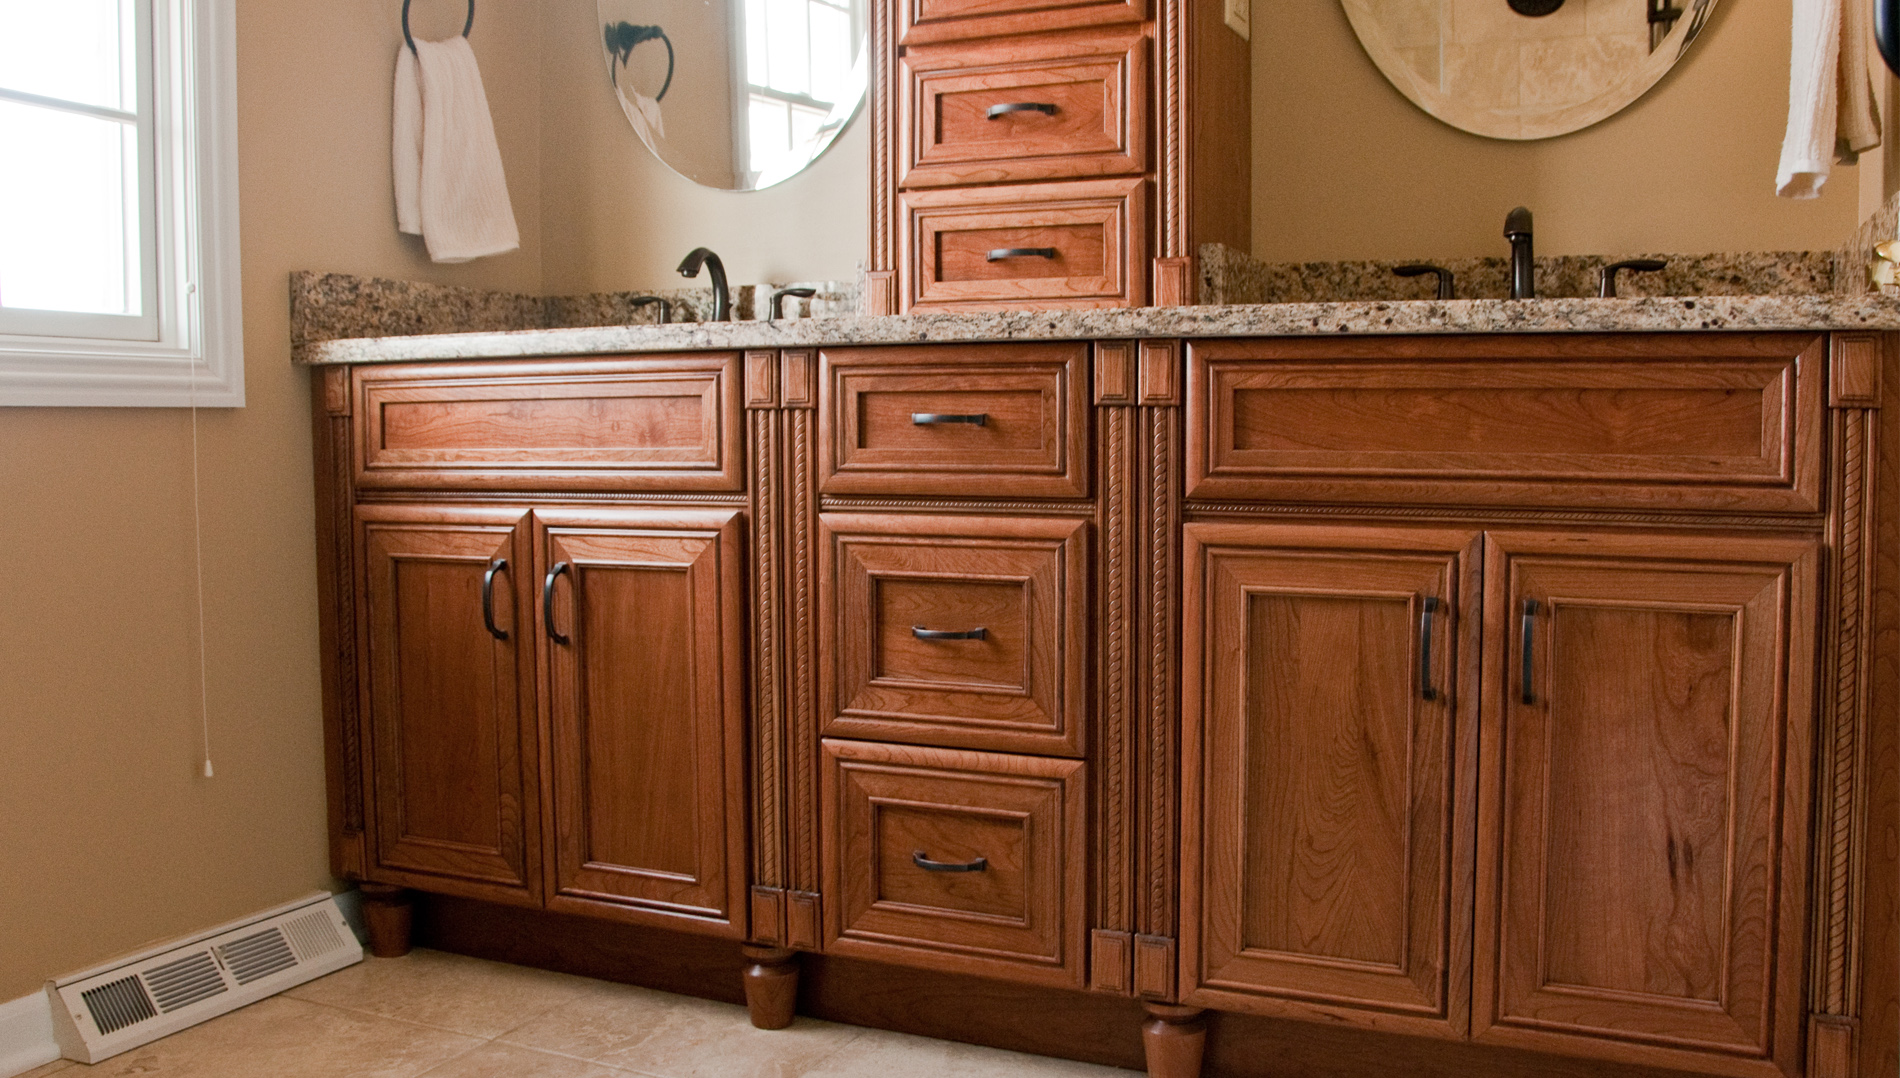 Custom Bathroom Vanities Designs custom cabinetry in the bathroom